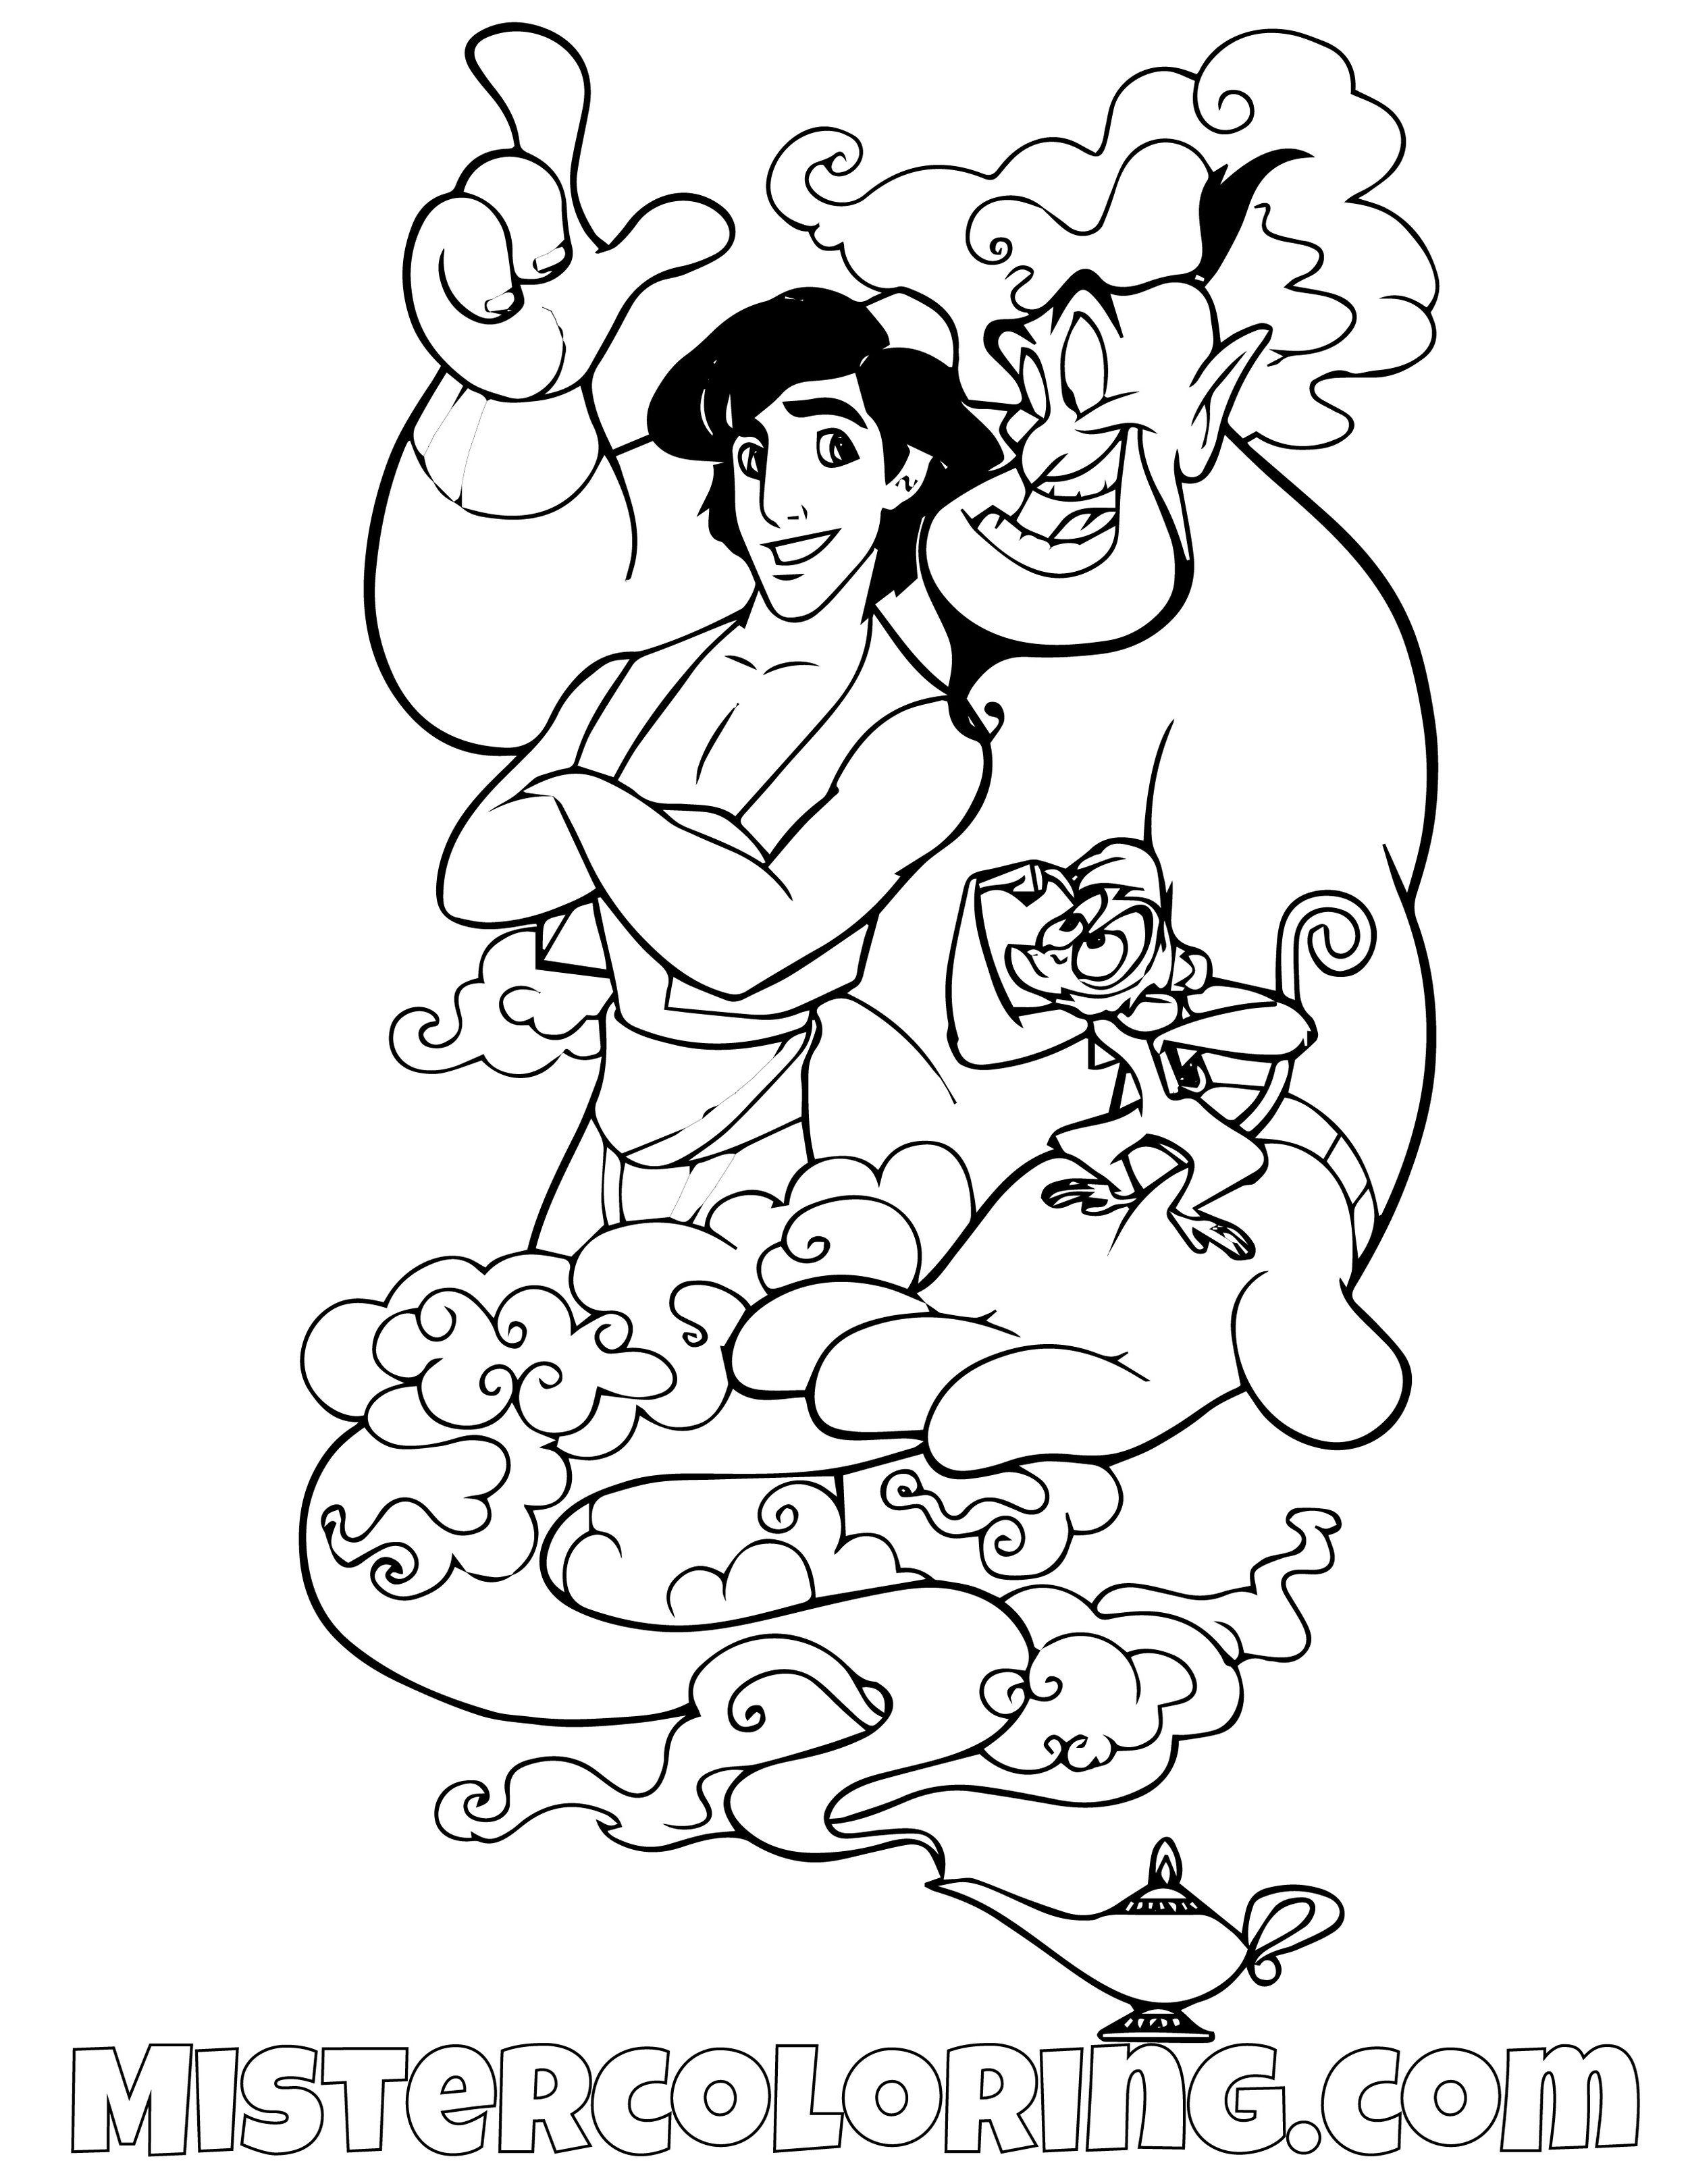 coloring pages of aledin - photo#41